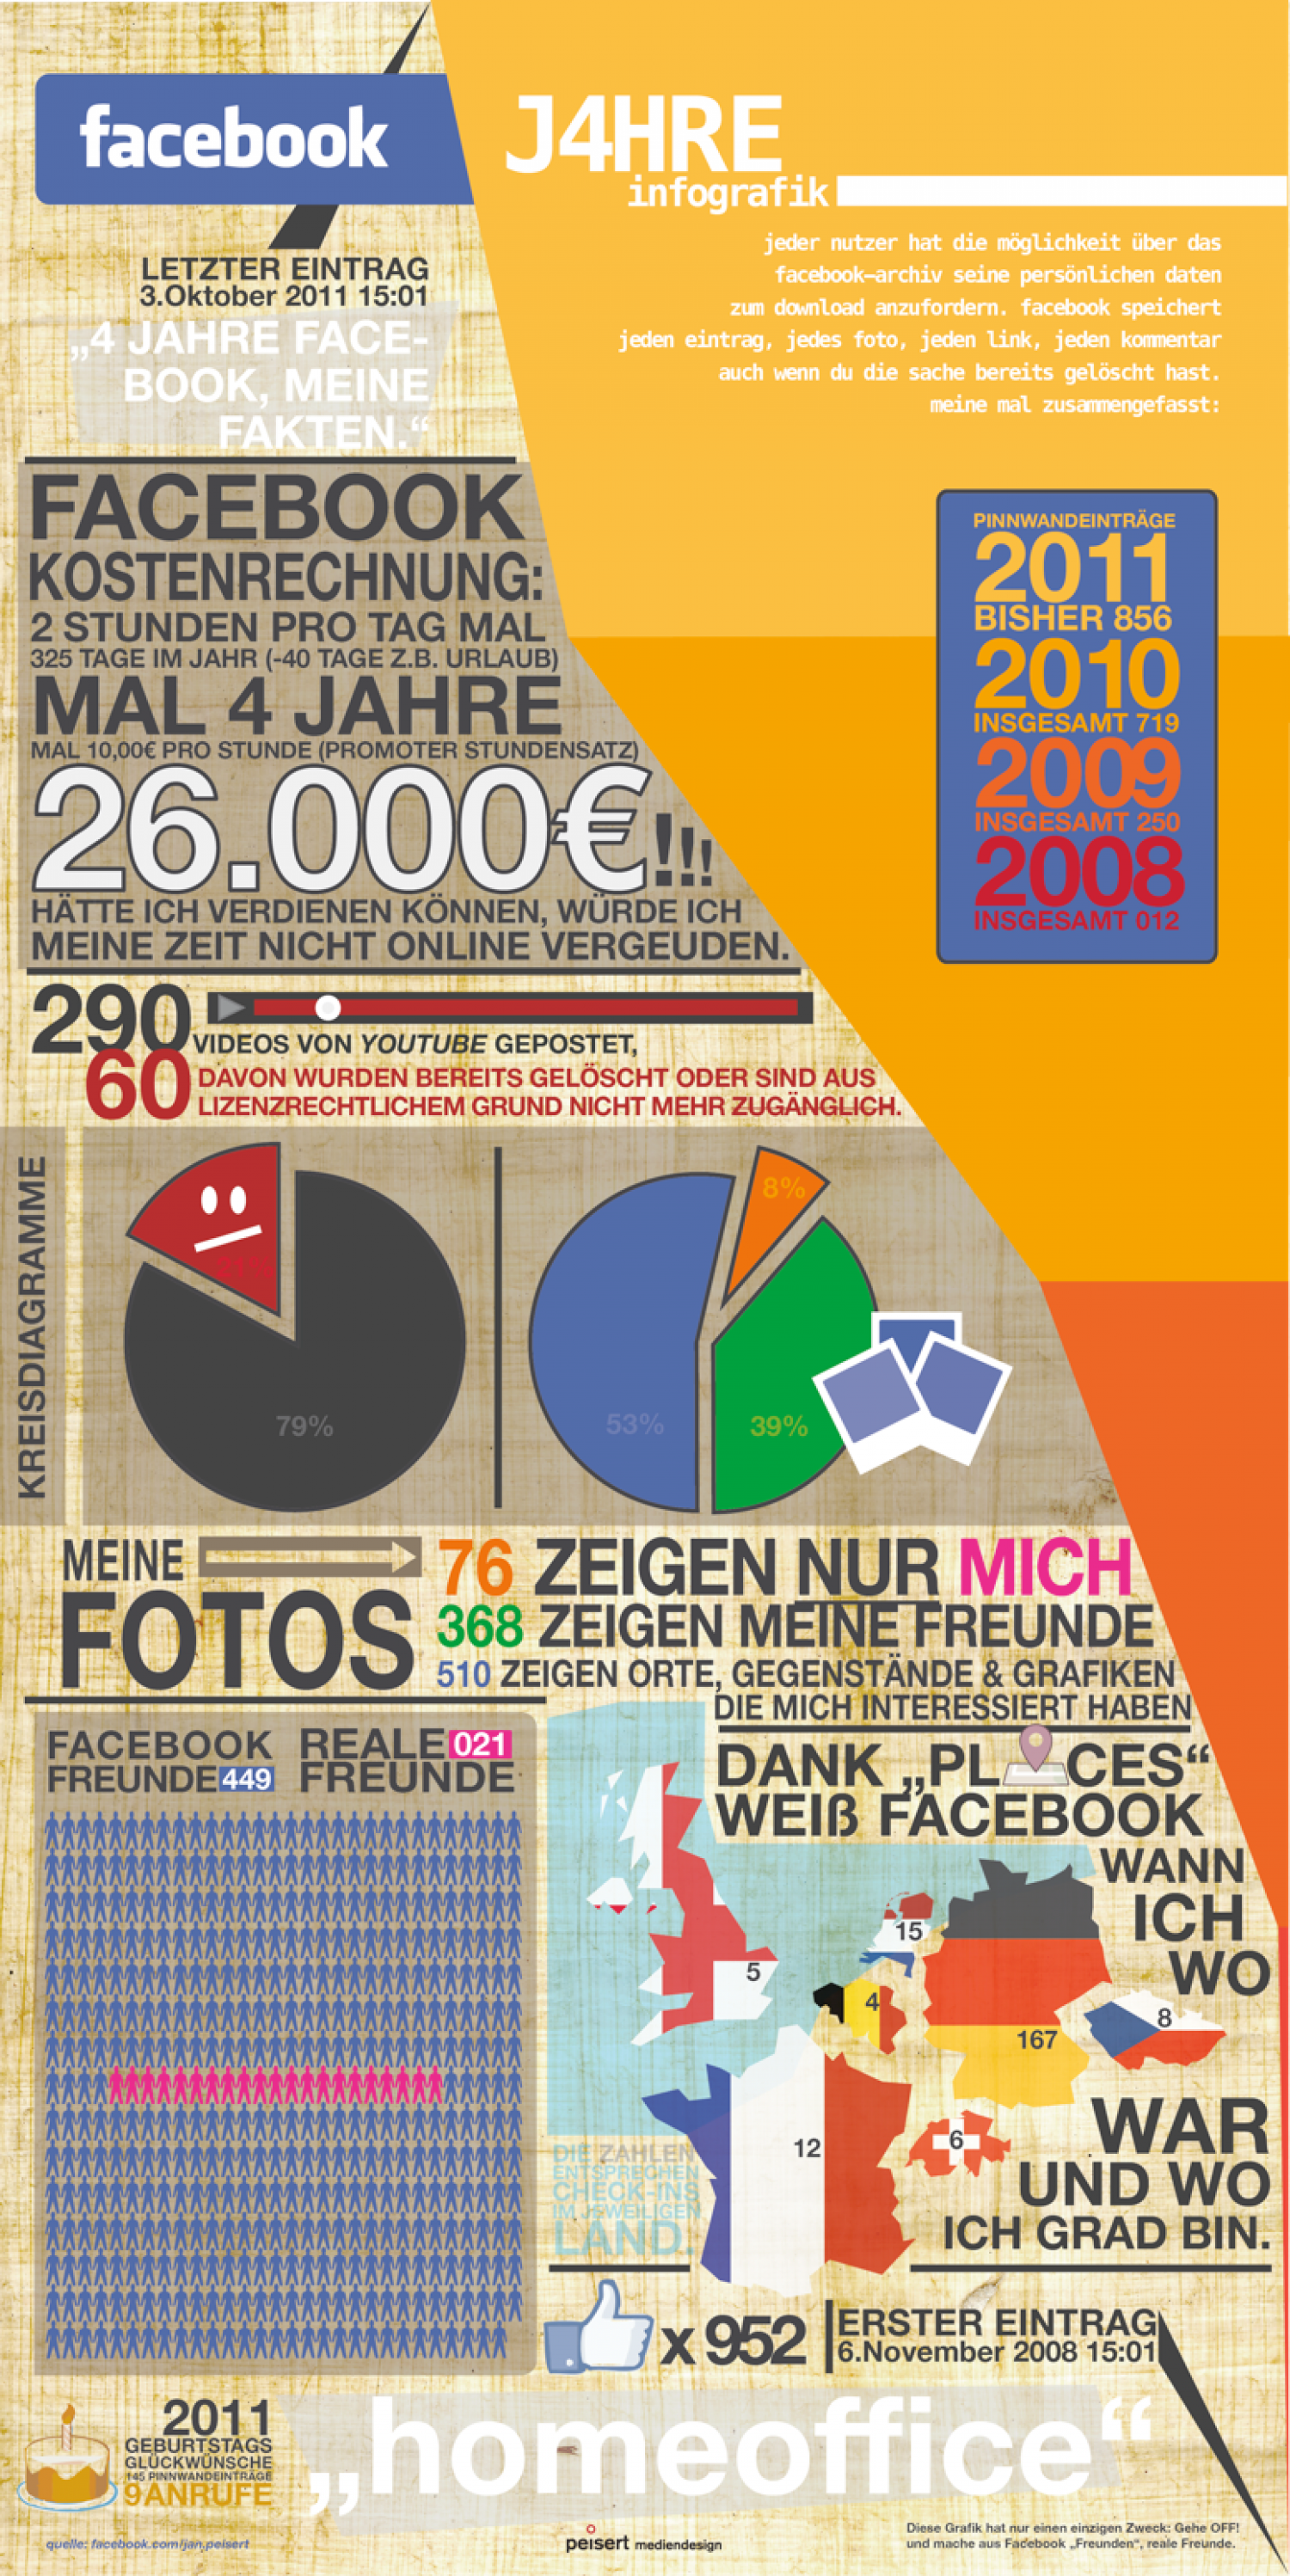 Facebook: J4HRE Infographic